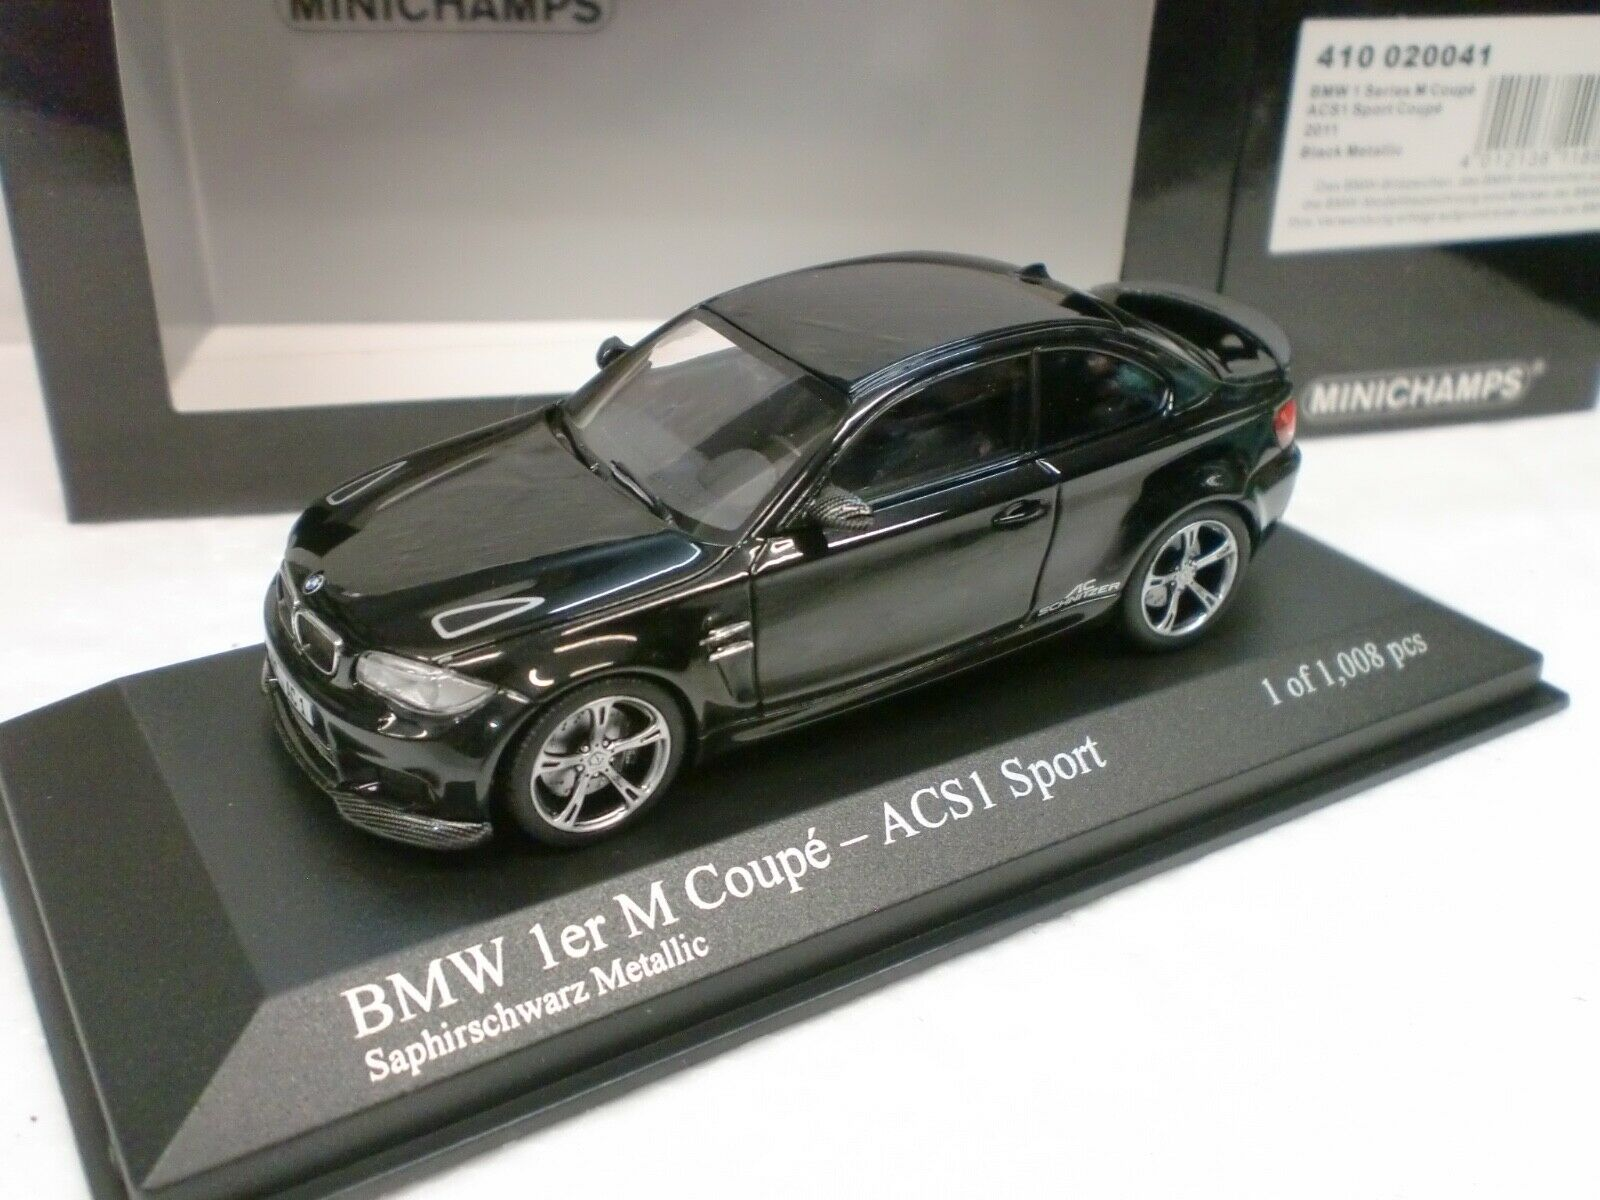 MINICHAMPS 1 43 - BMW 1 M COUPE' ACS1 SPORT 2011 - 410 020041